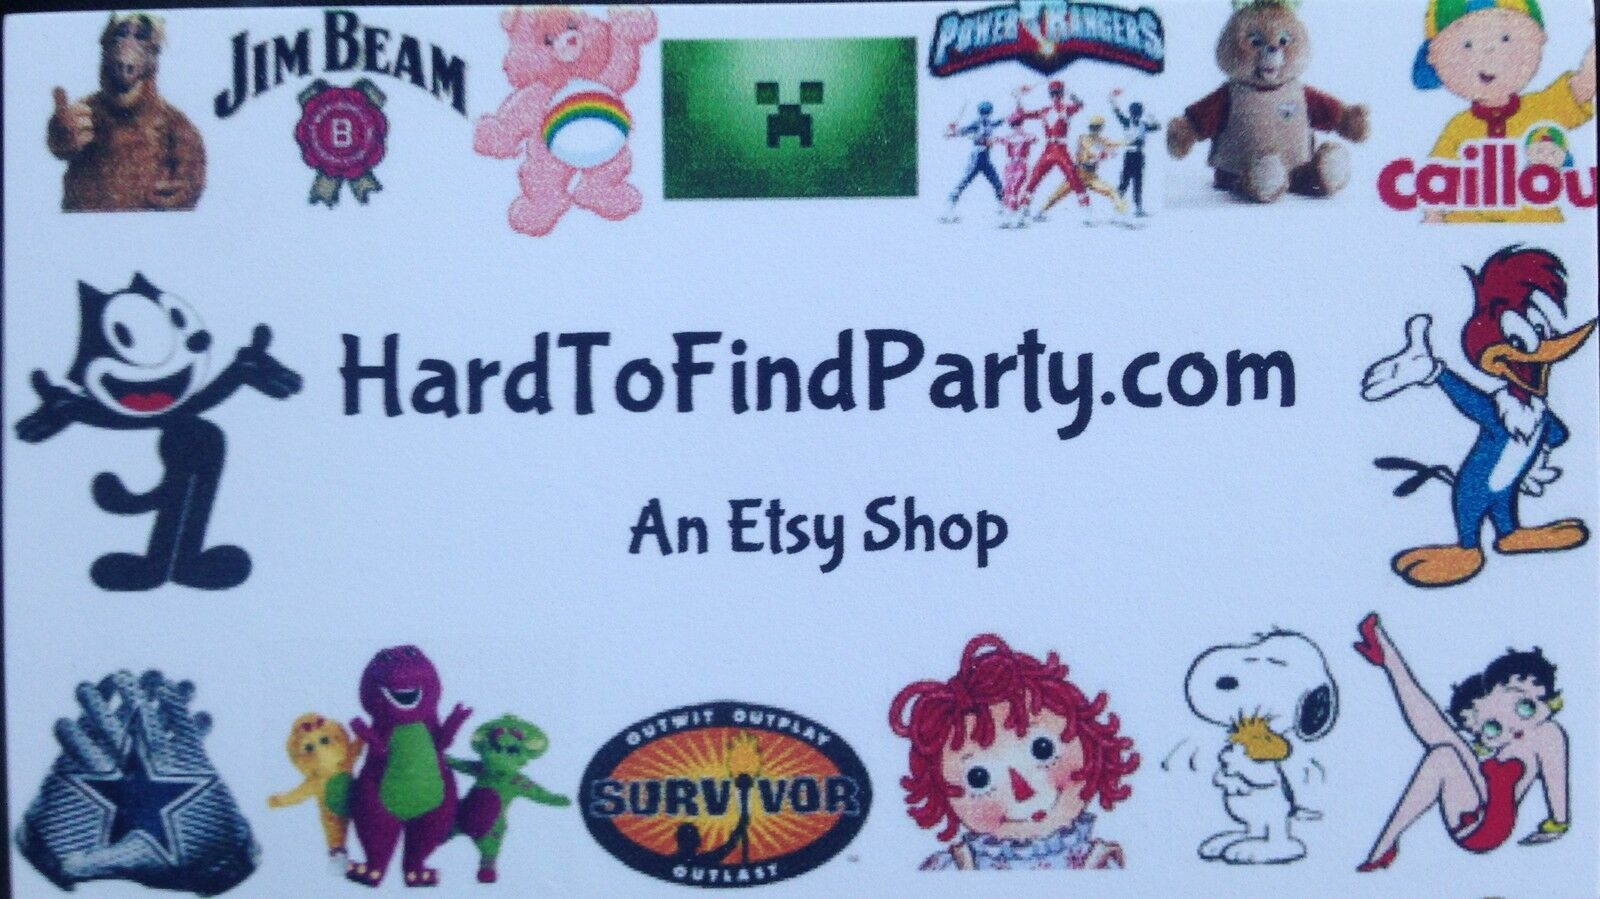 HardToFindParty